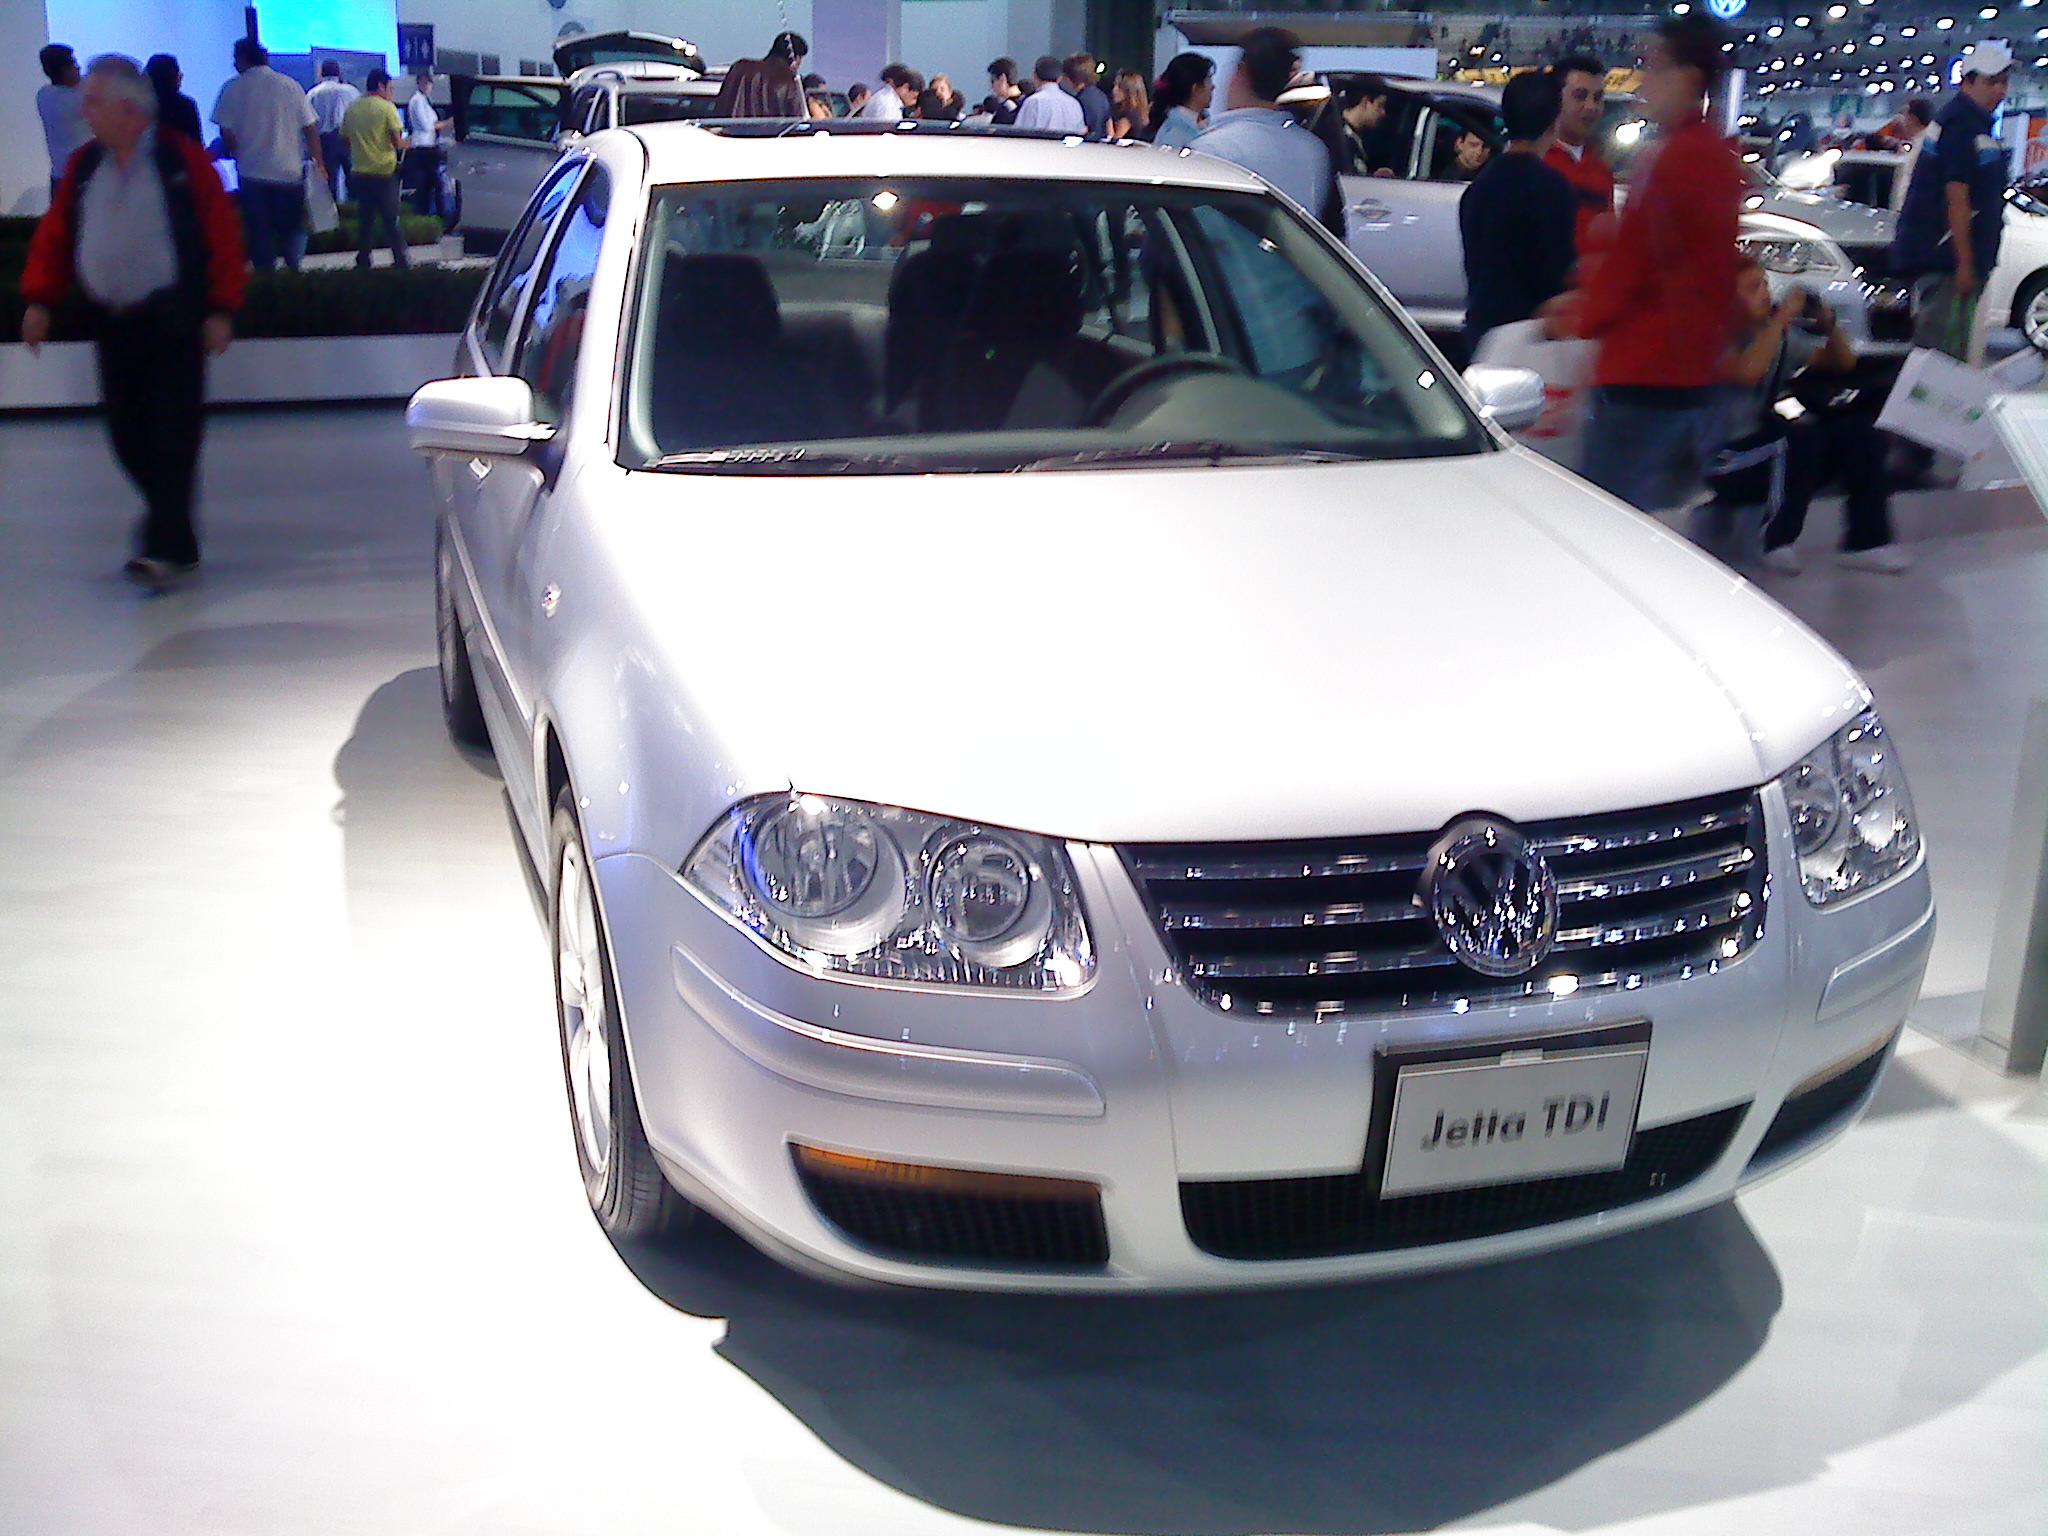 file:vw jetta tdi ftl siam2008 - wikimedia commons